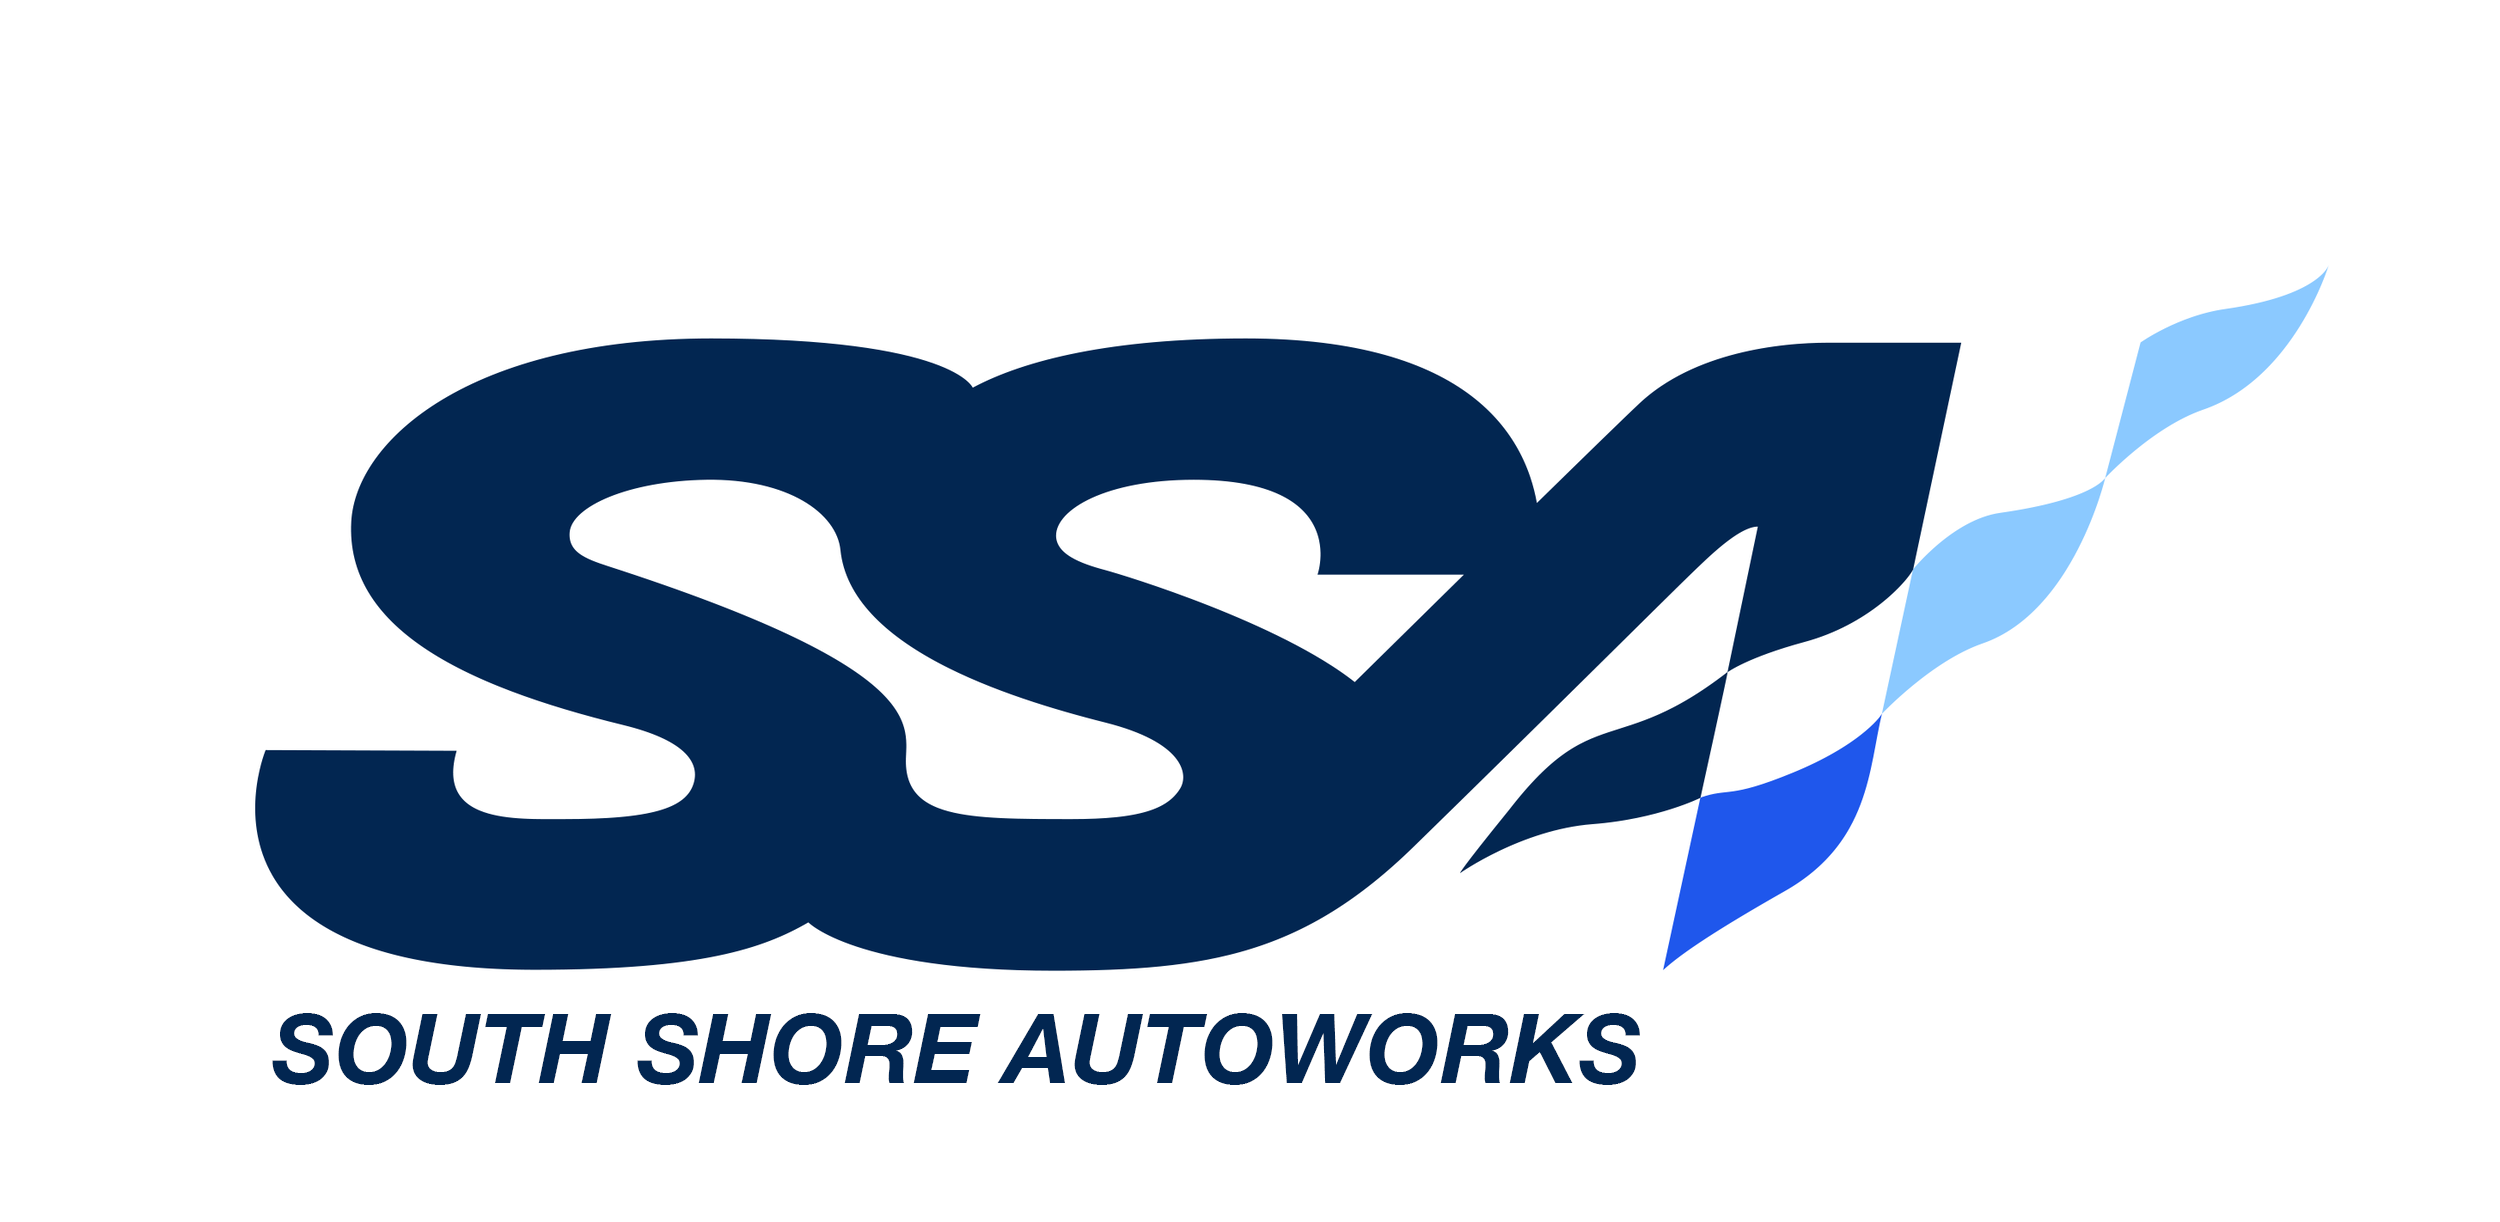 south shore autoworks logo